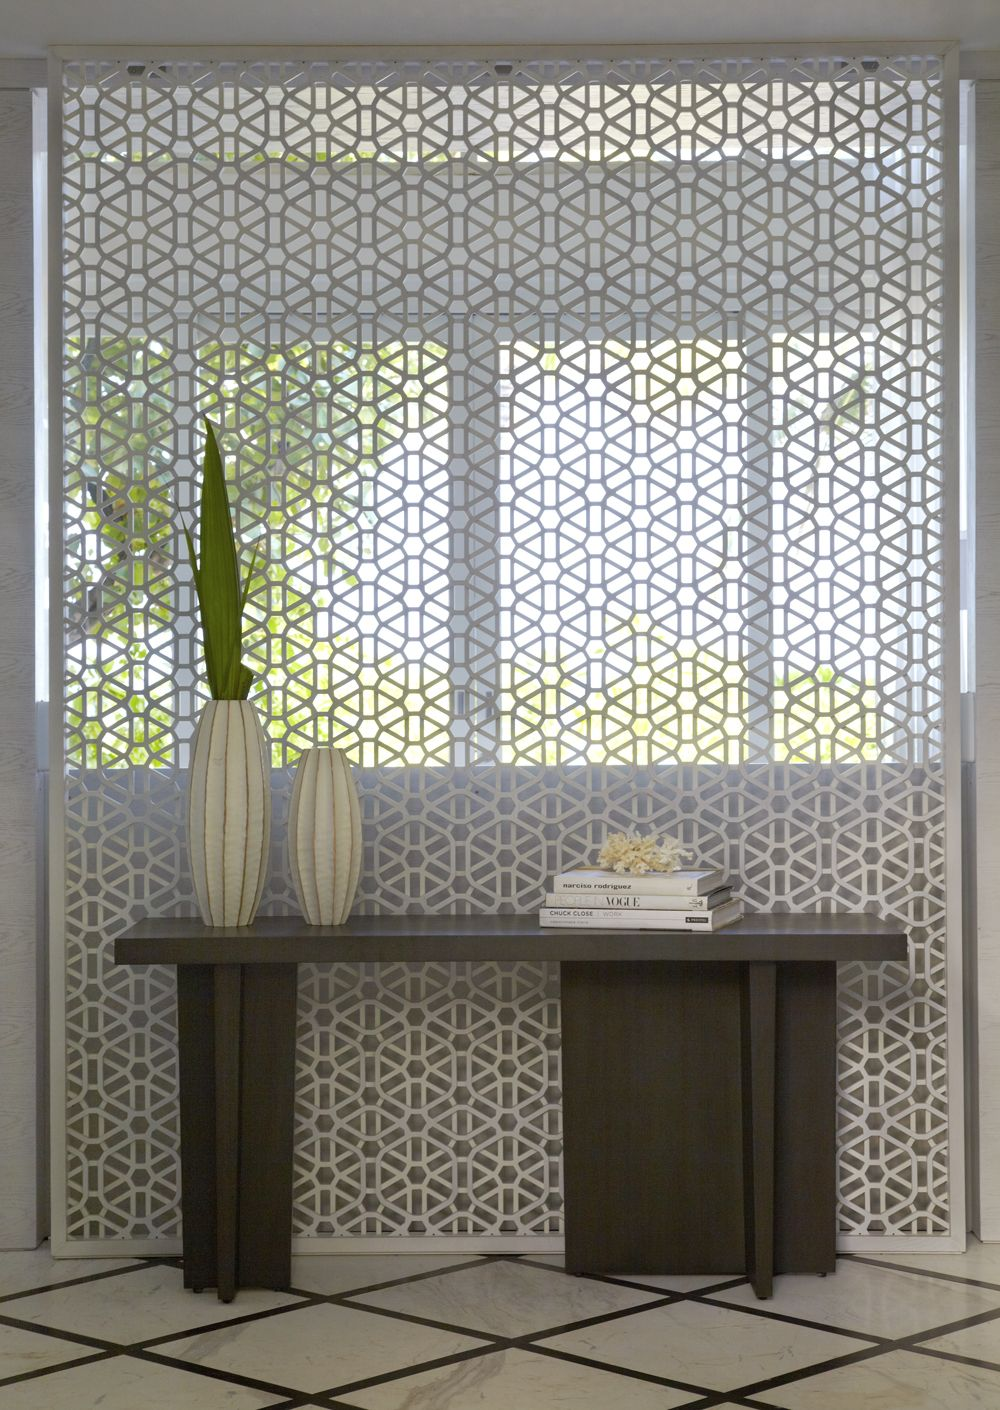 P yabu pushelbergus intricate white screen in the entry at viceroy